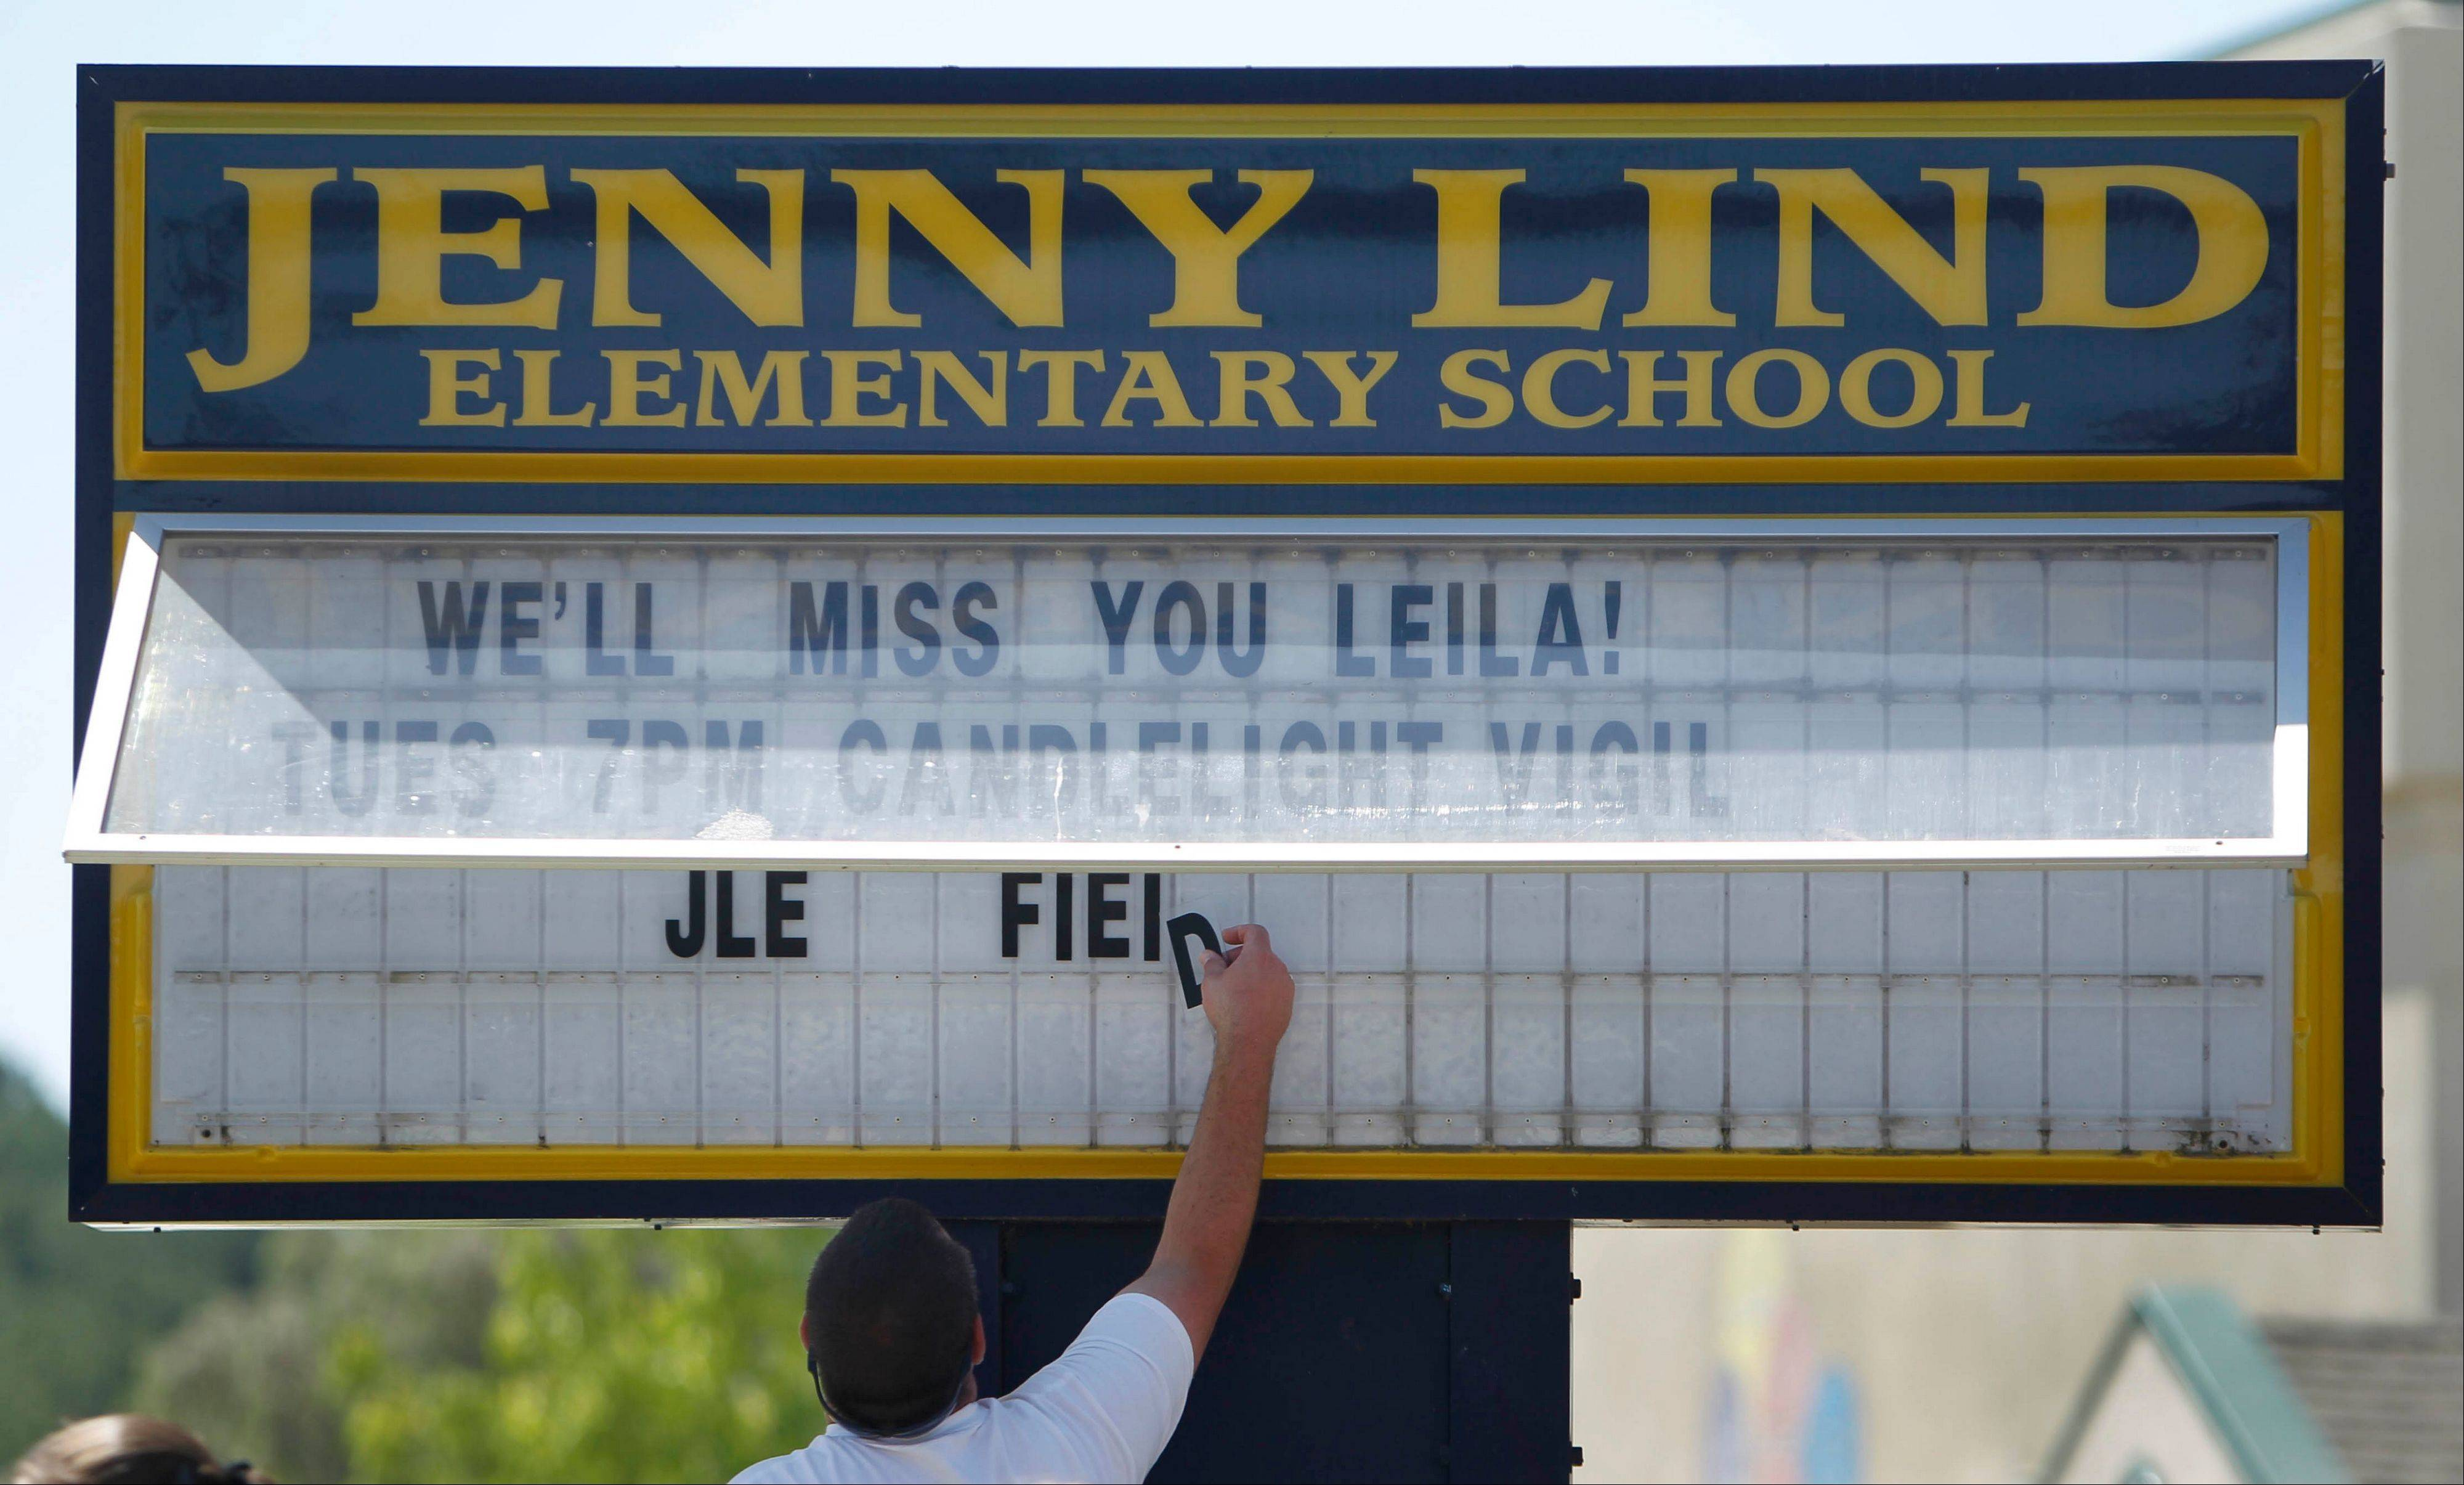 Patrick Foley, head custodian at Jenny Lind Elementary School, puts up a sign about a candlelight vigil to be help for Leila Fowler, in Valley Springs, Calif., Monday, April 29, 2013. Authorities are searching for the killer of Fowler, 8, a third-grader at Jenny Lind, who was found dead by her 12-year-old brother in the family's Valley Springs home Saturday.